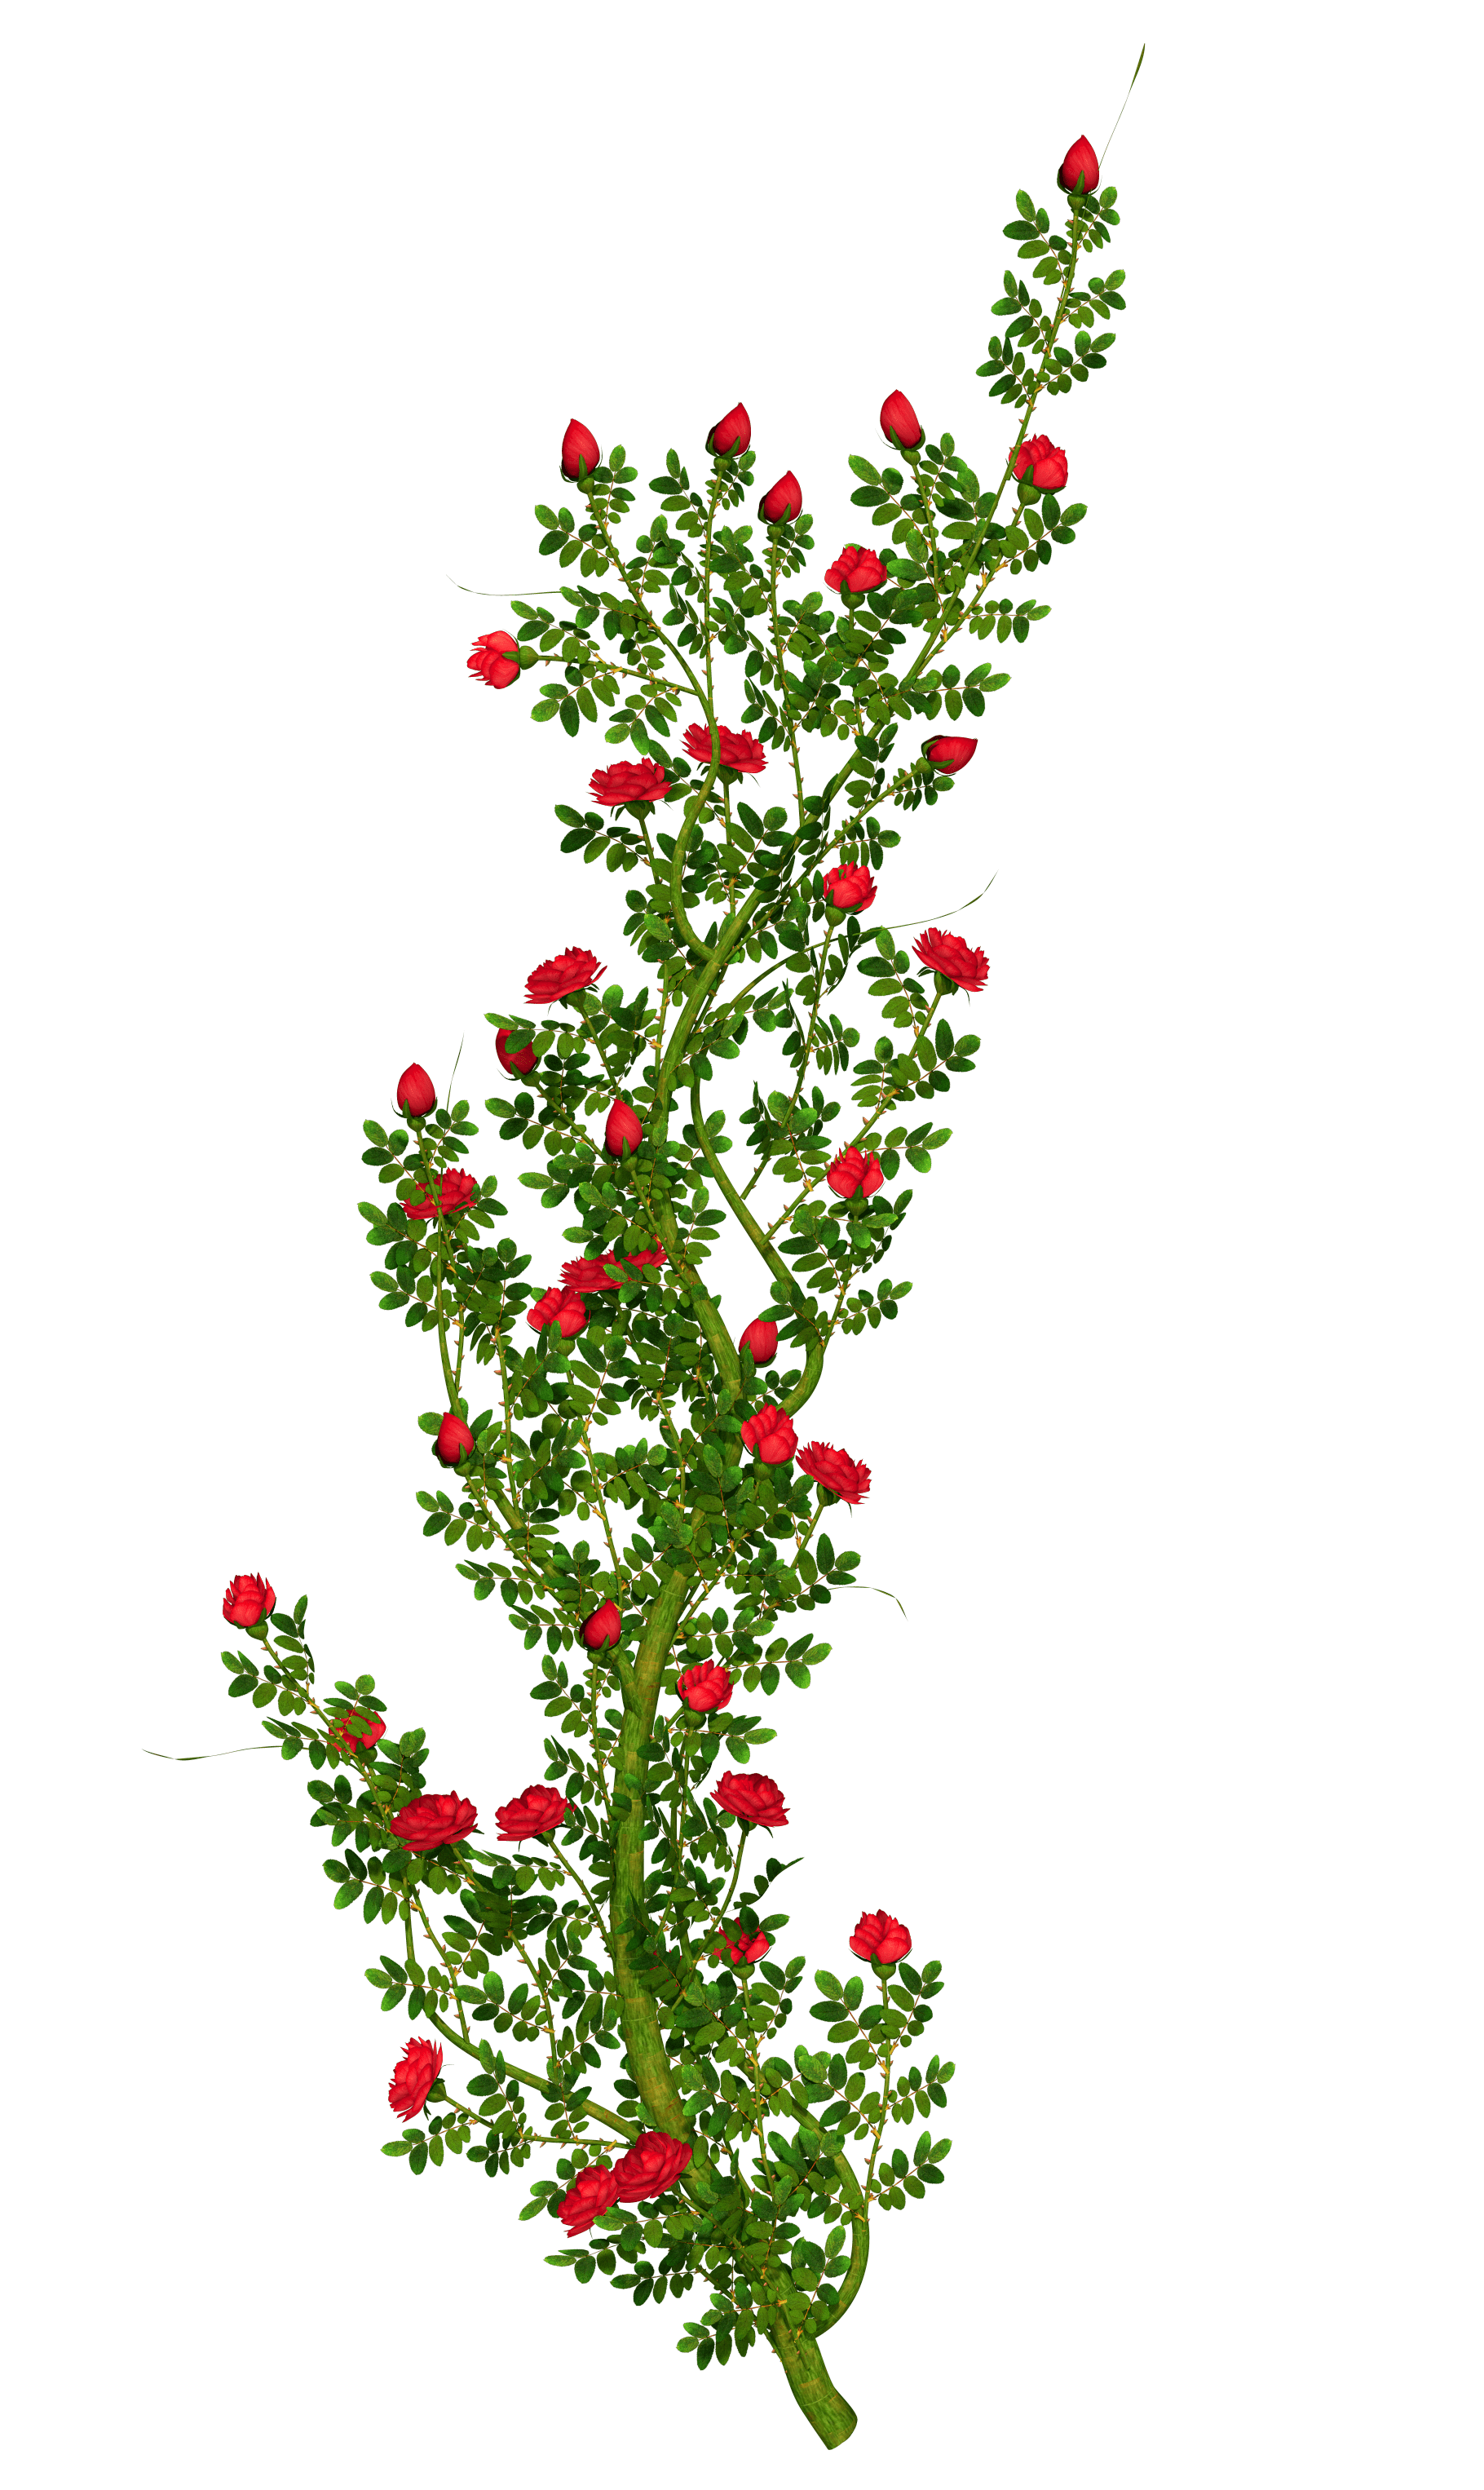 Field Wild Roses Red